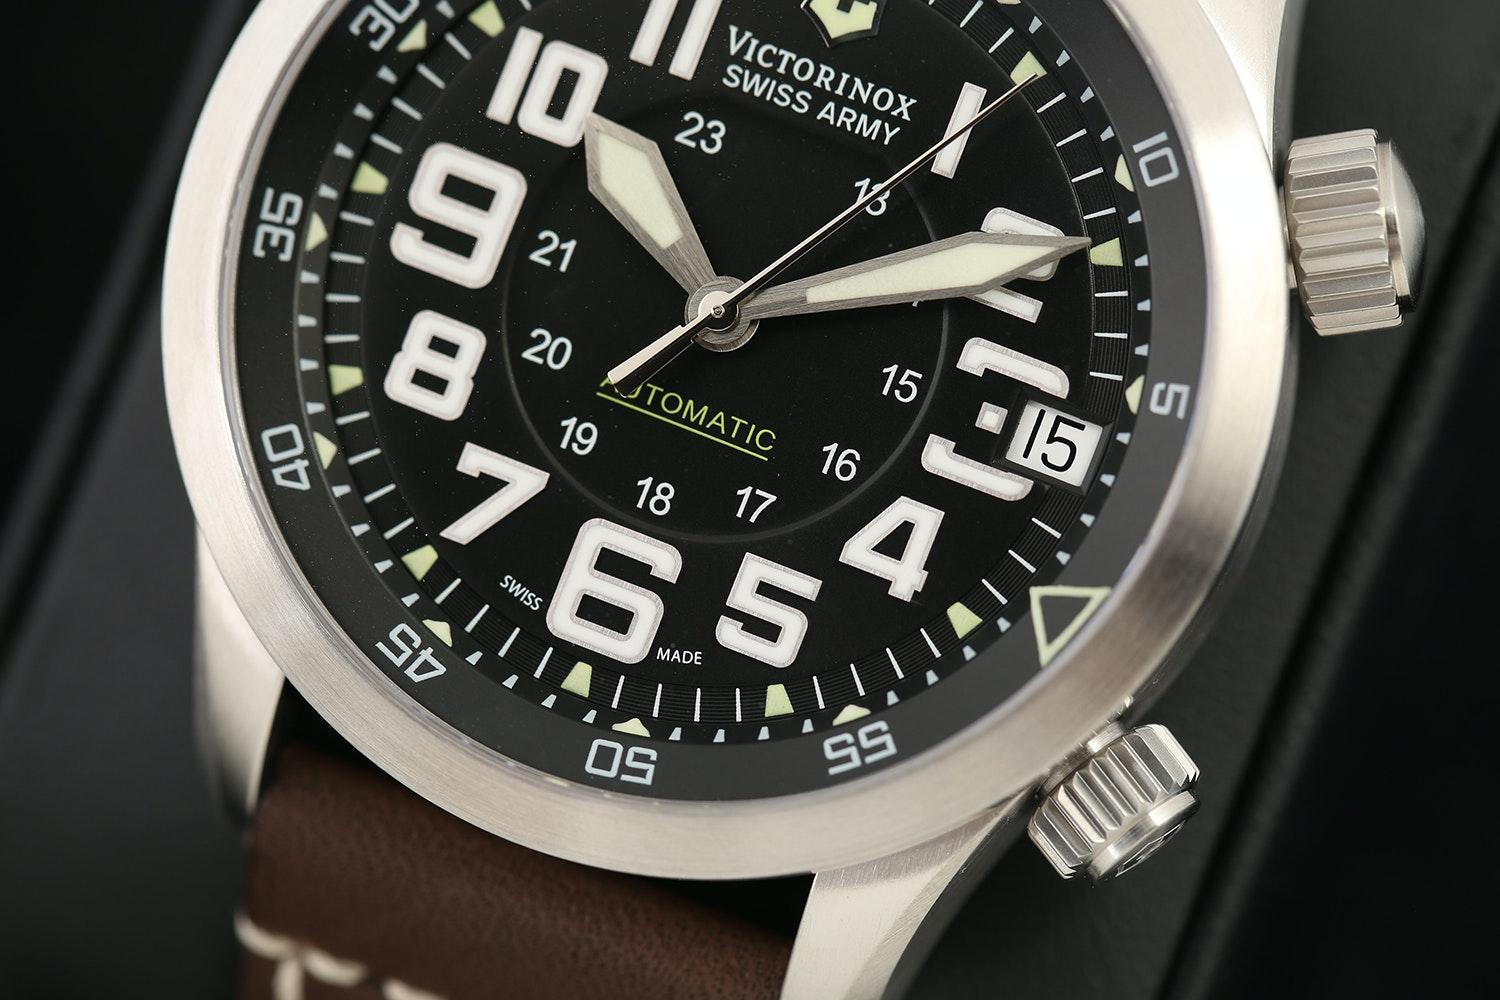 Victorinox Airboss Mach Watch